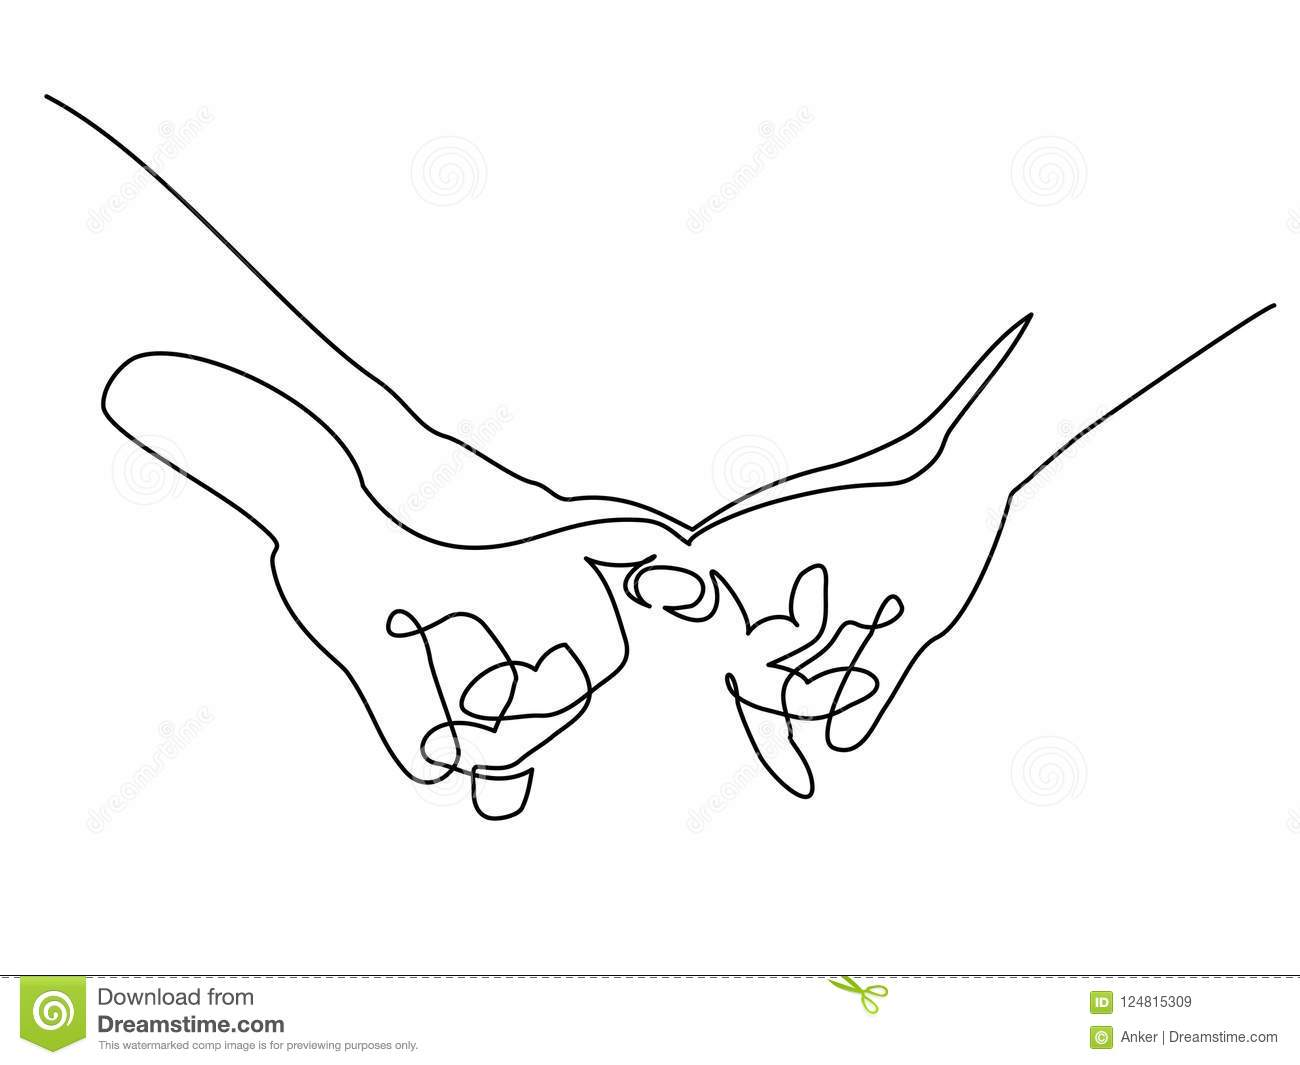 Hands Woman And Man Holding To her With Fingers Stock Vector